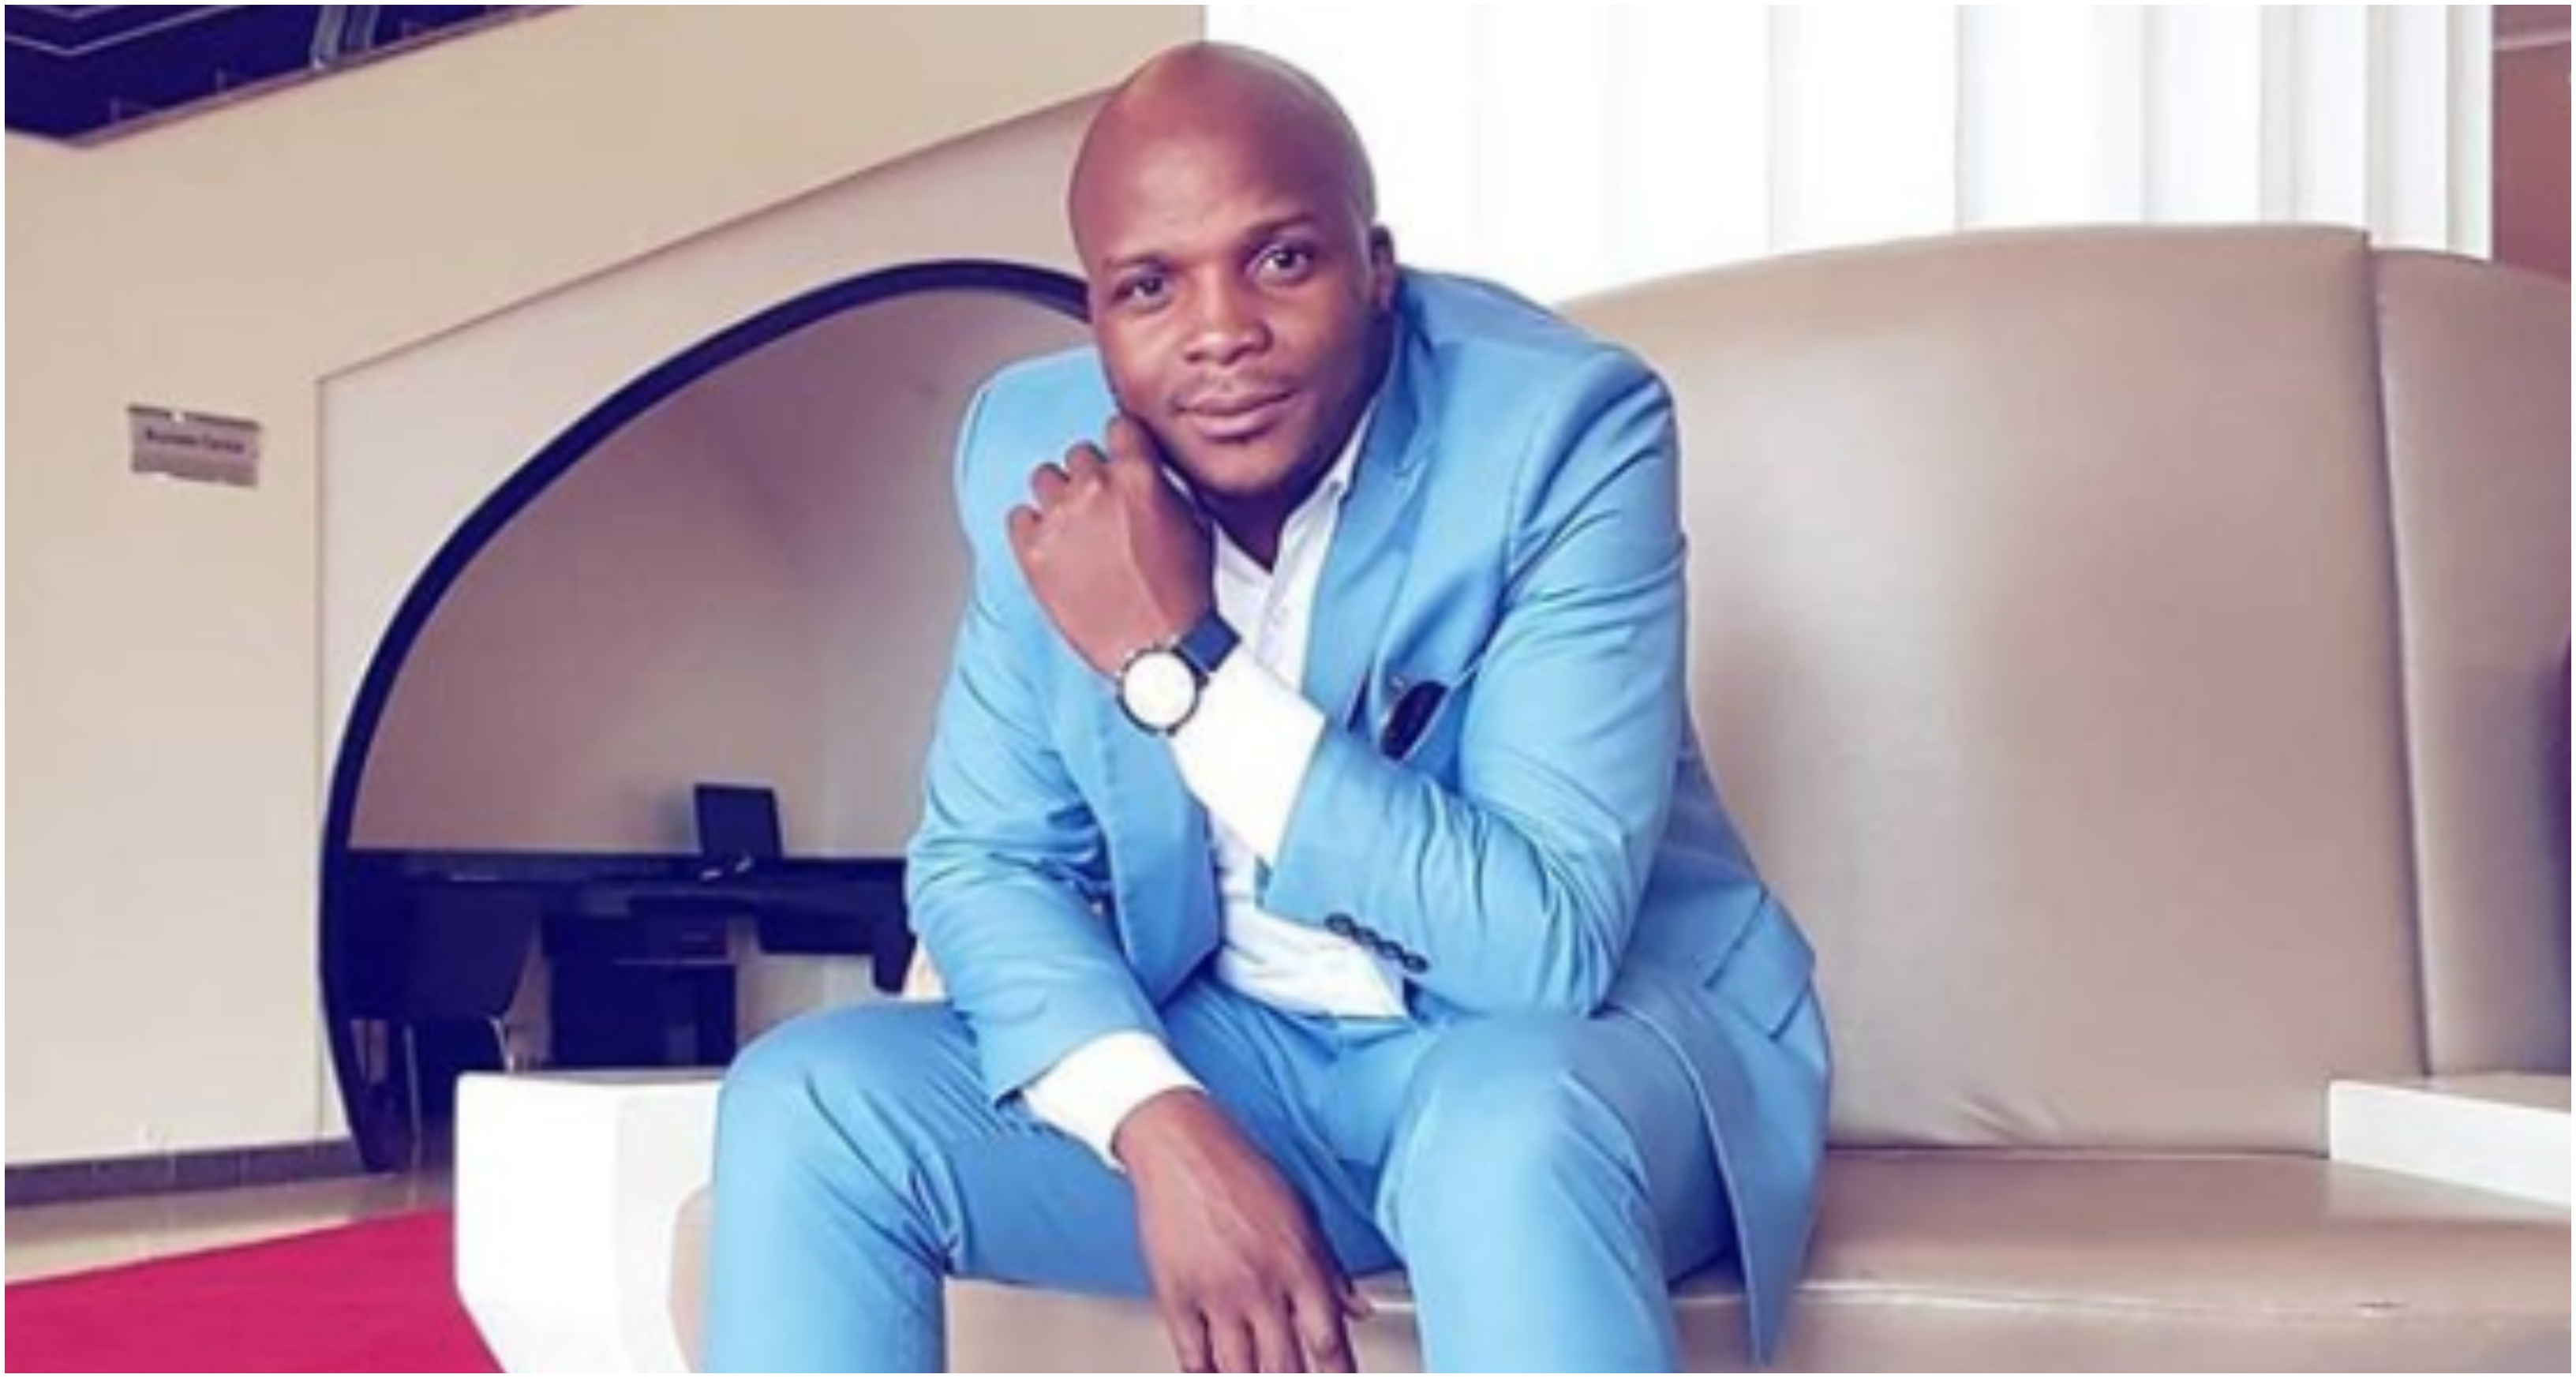 Multi-millions Jalang'o has been minting from his YouTube channel revealed (Video)